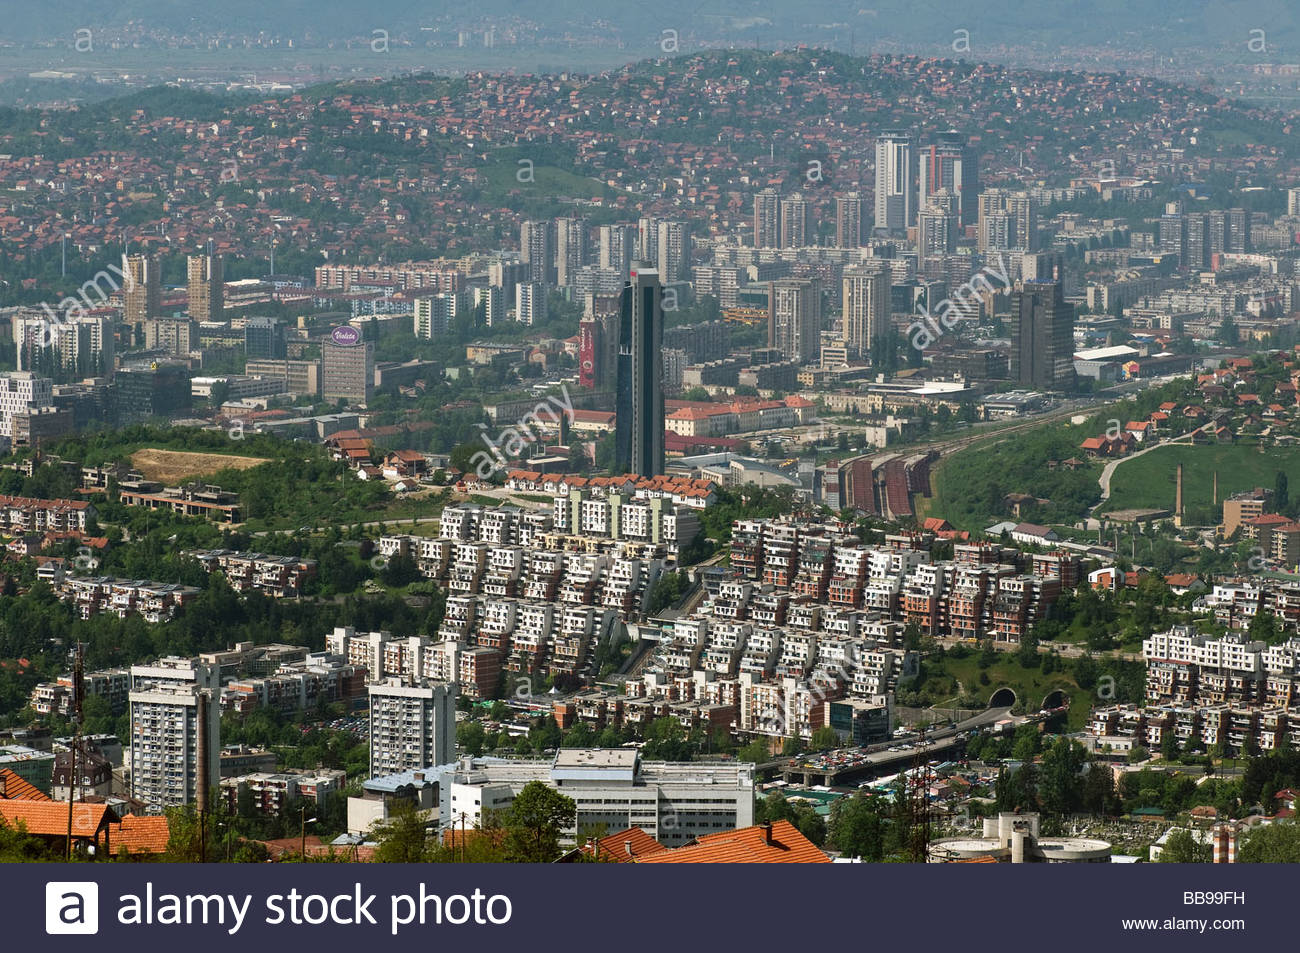 View of Sarajevo capital of Bosnia Herzegovina - Stock Image